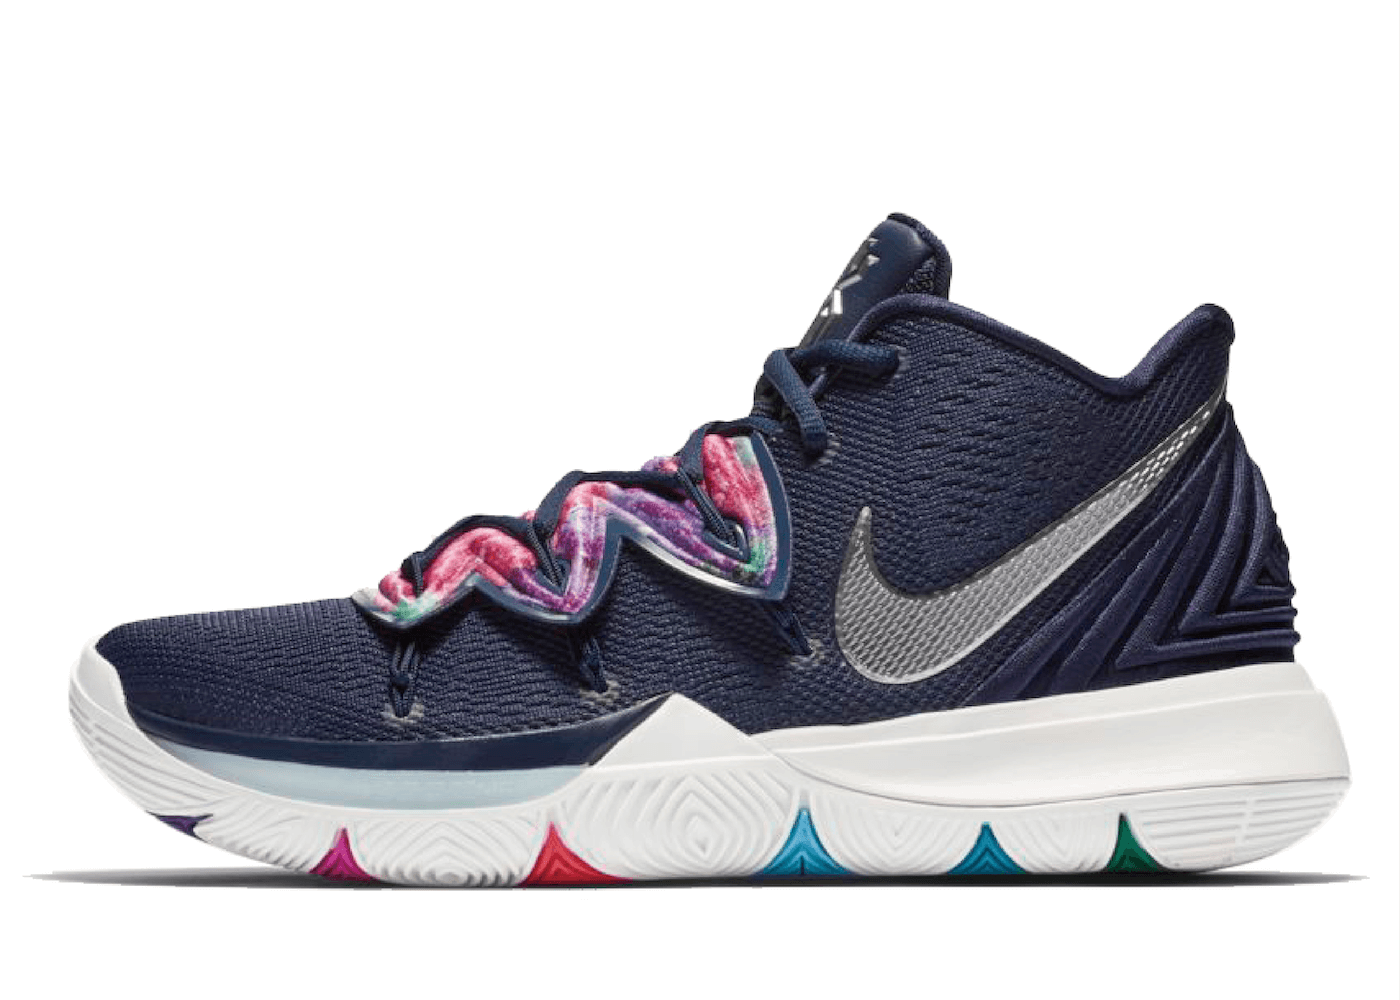 Nike Kyrie 5 Multi-Colorの写真